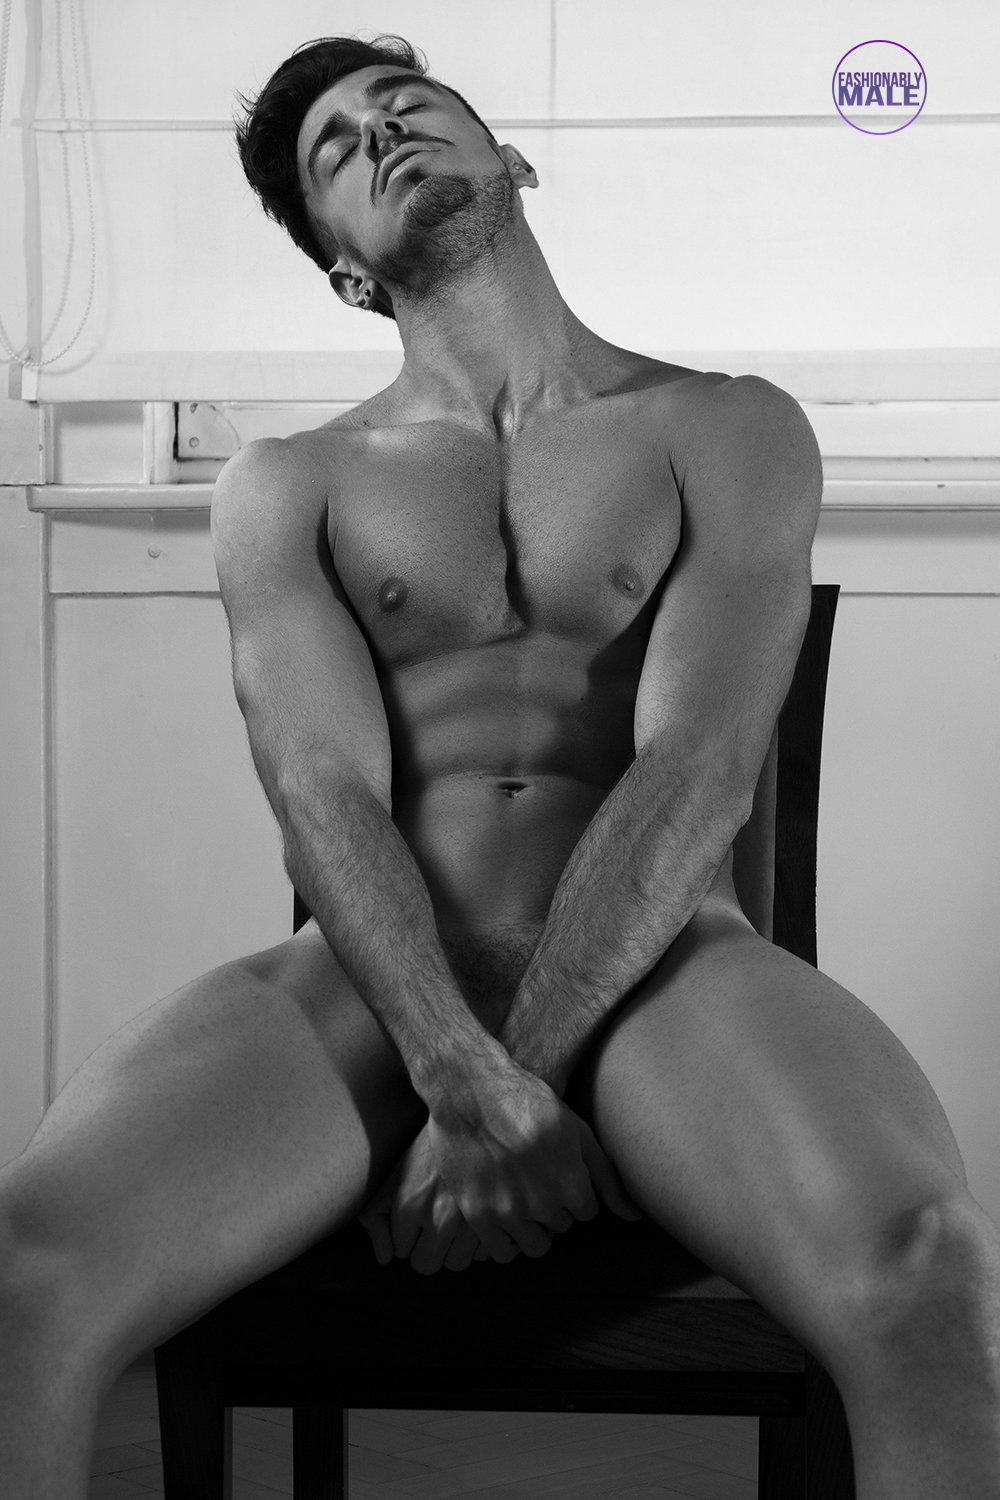 Luca Scarpa by Alisson Marks for Fashionably Male4